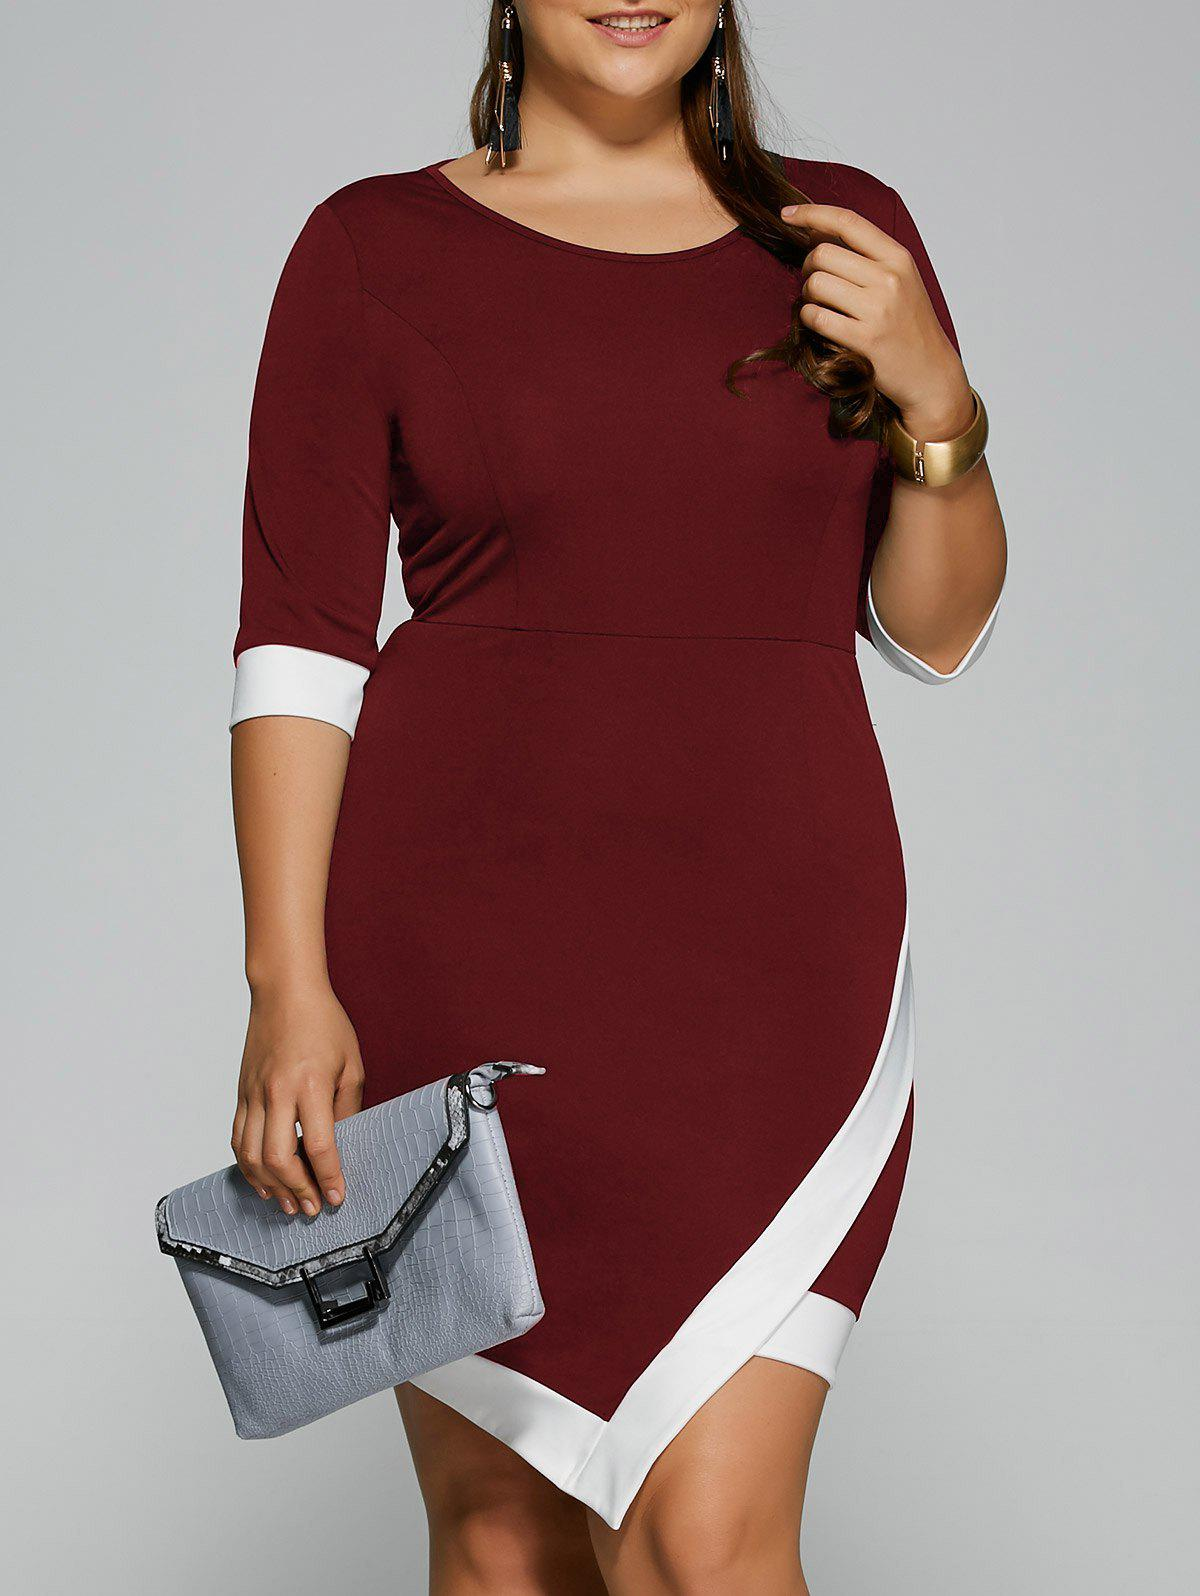 Plus Size Overlap Short Bodycon Bandage Dress - DARK RED XL